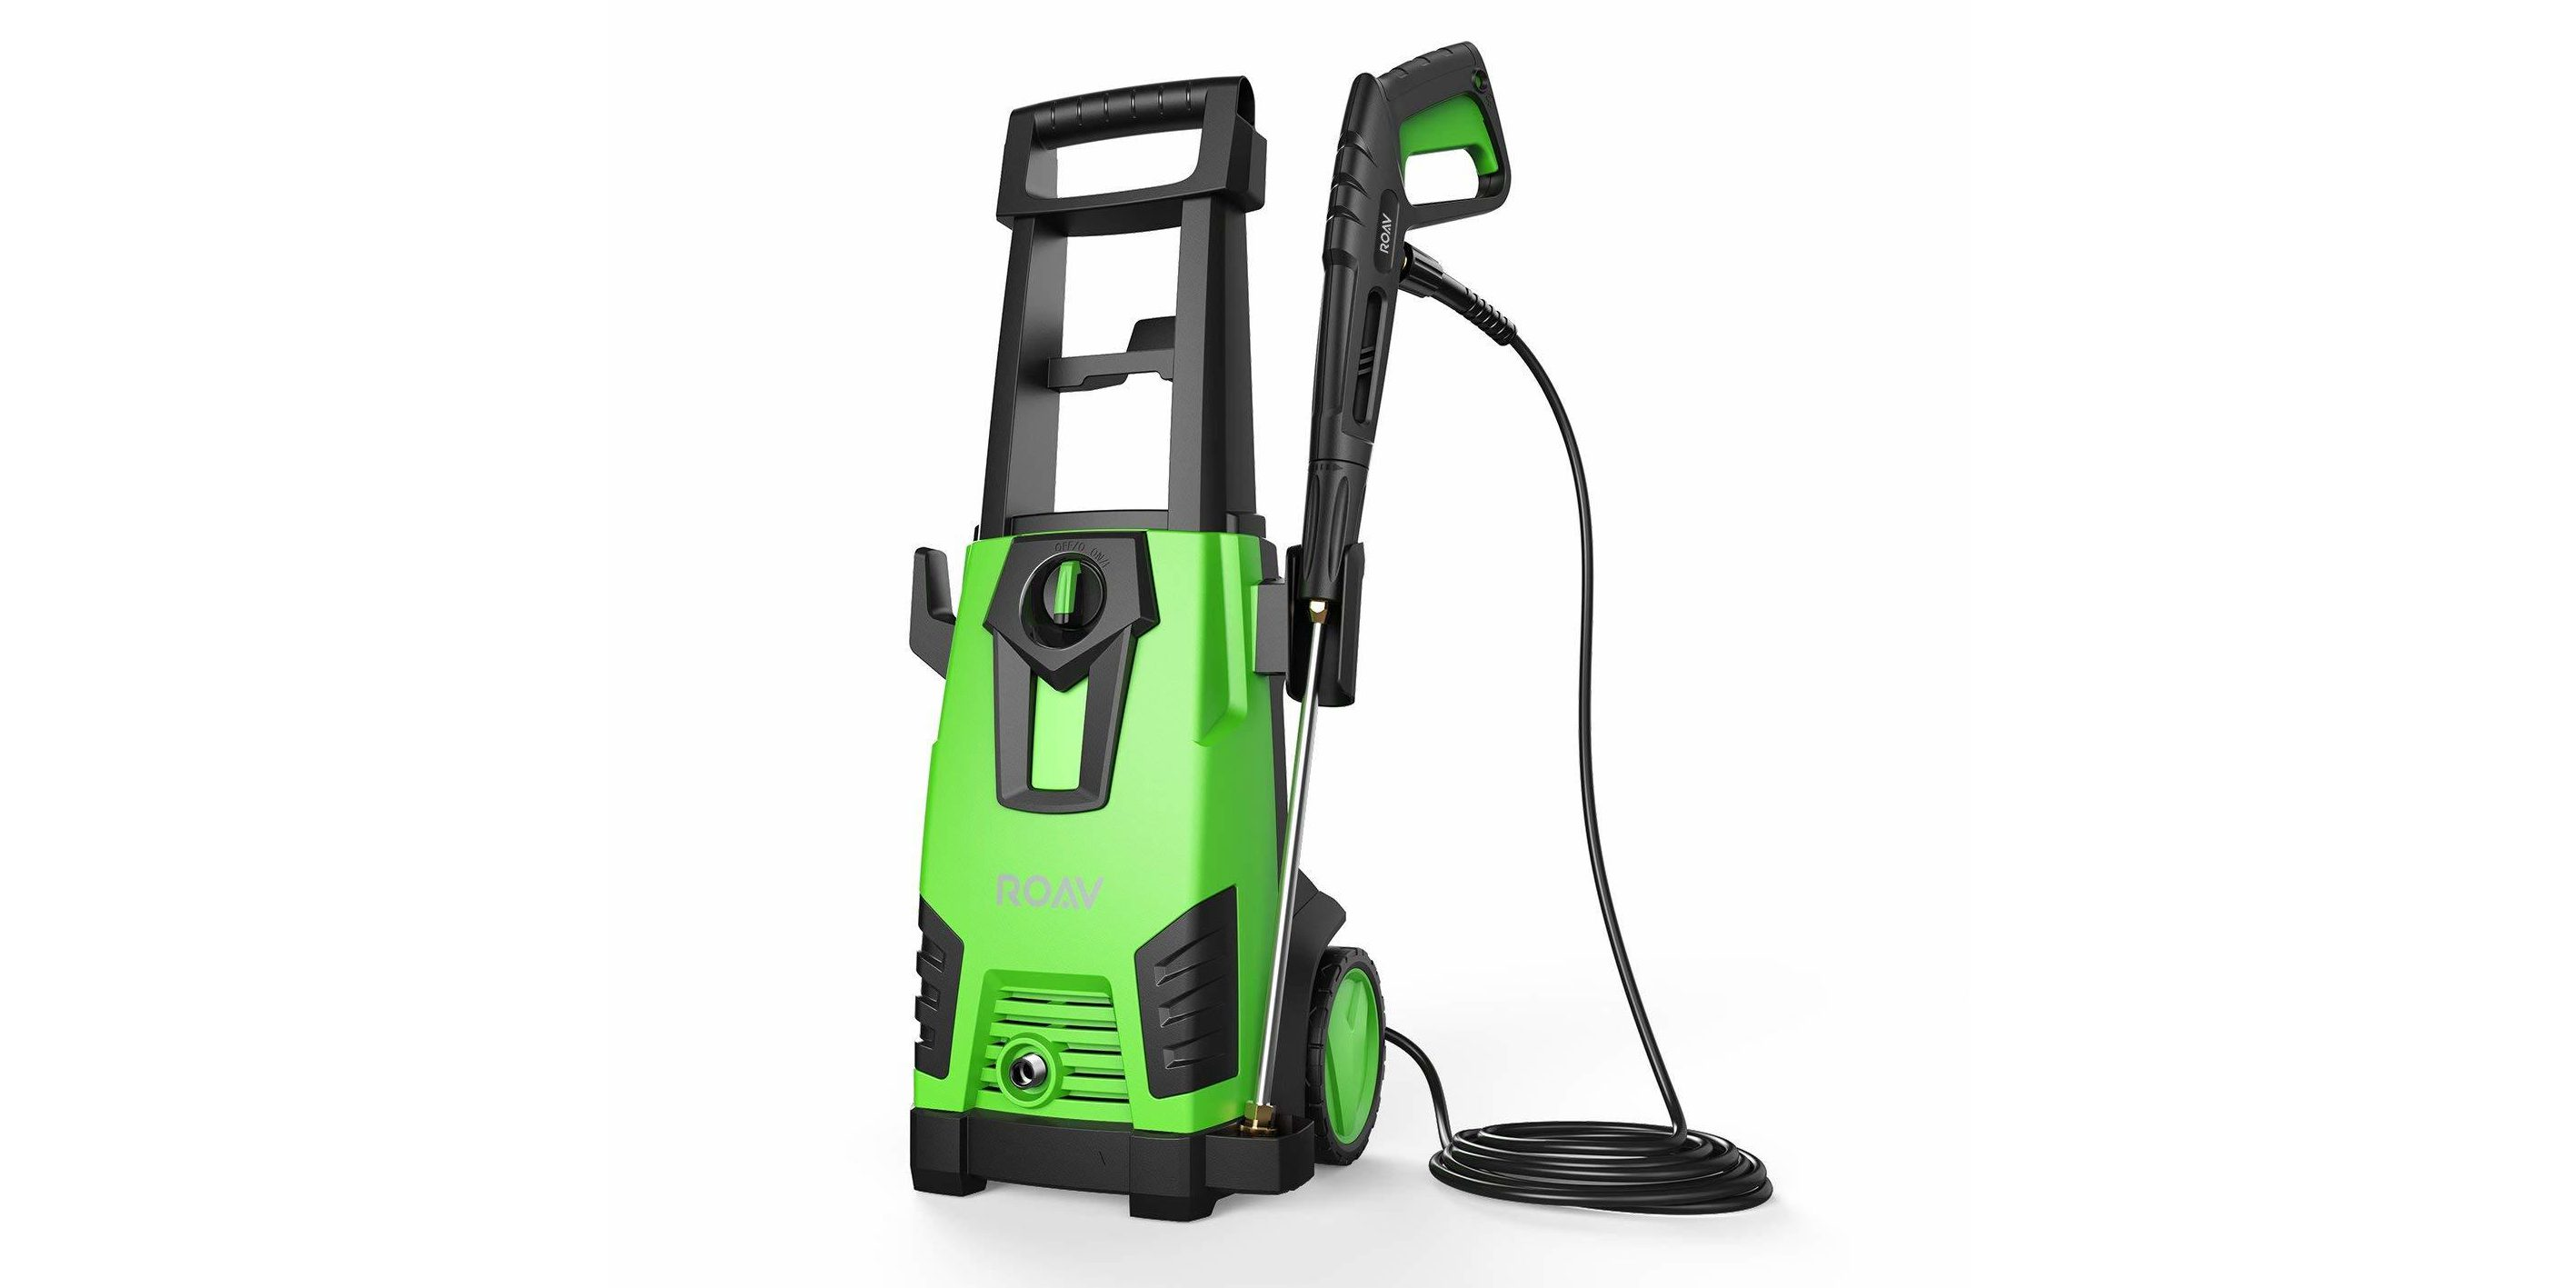 Anker's ROAV HydroClean Electric Pressure Washer is $120, plus deals on electric blowers and chainsaws